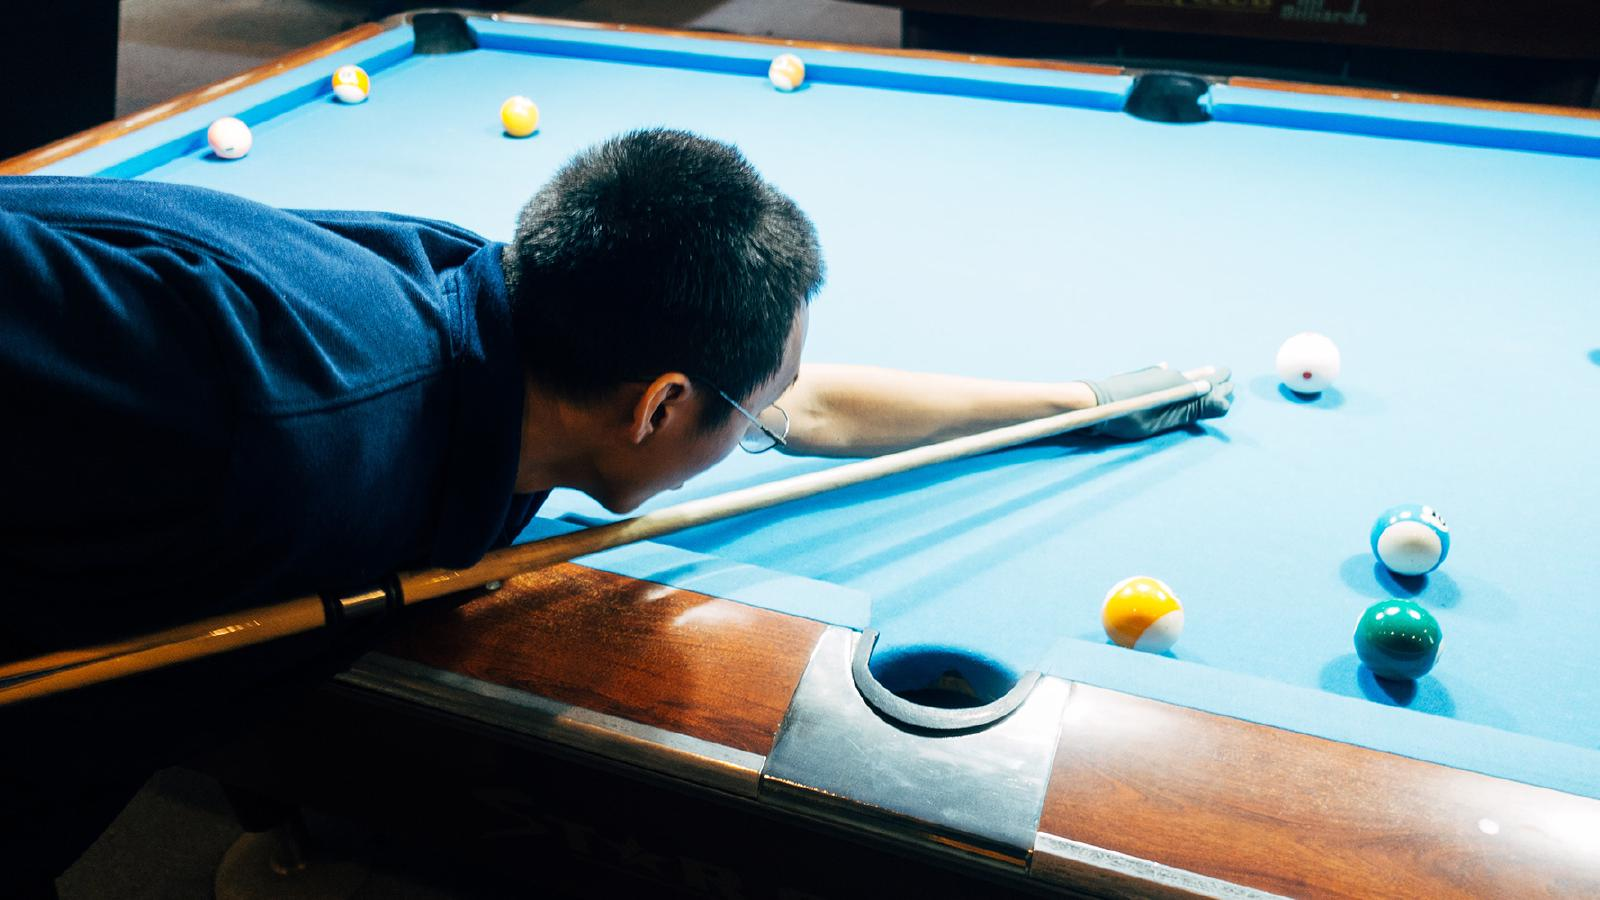 How to Play Cutthroat Billiards